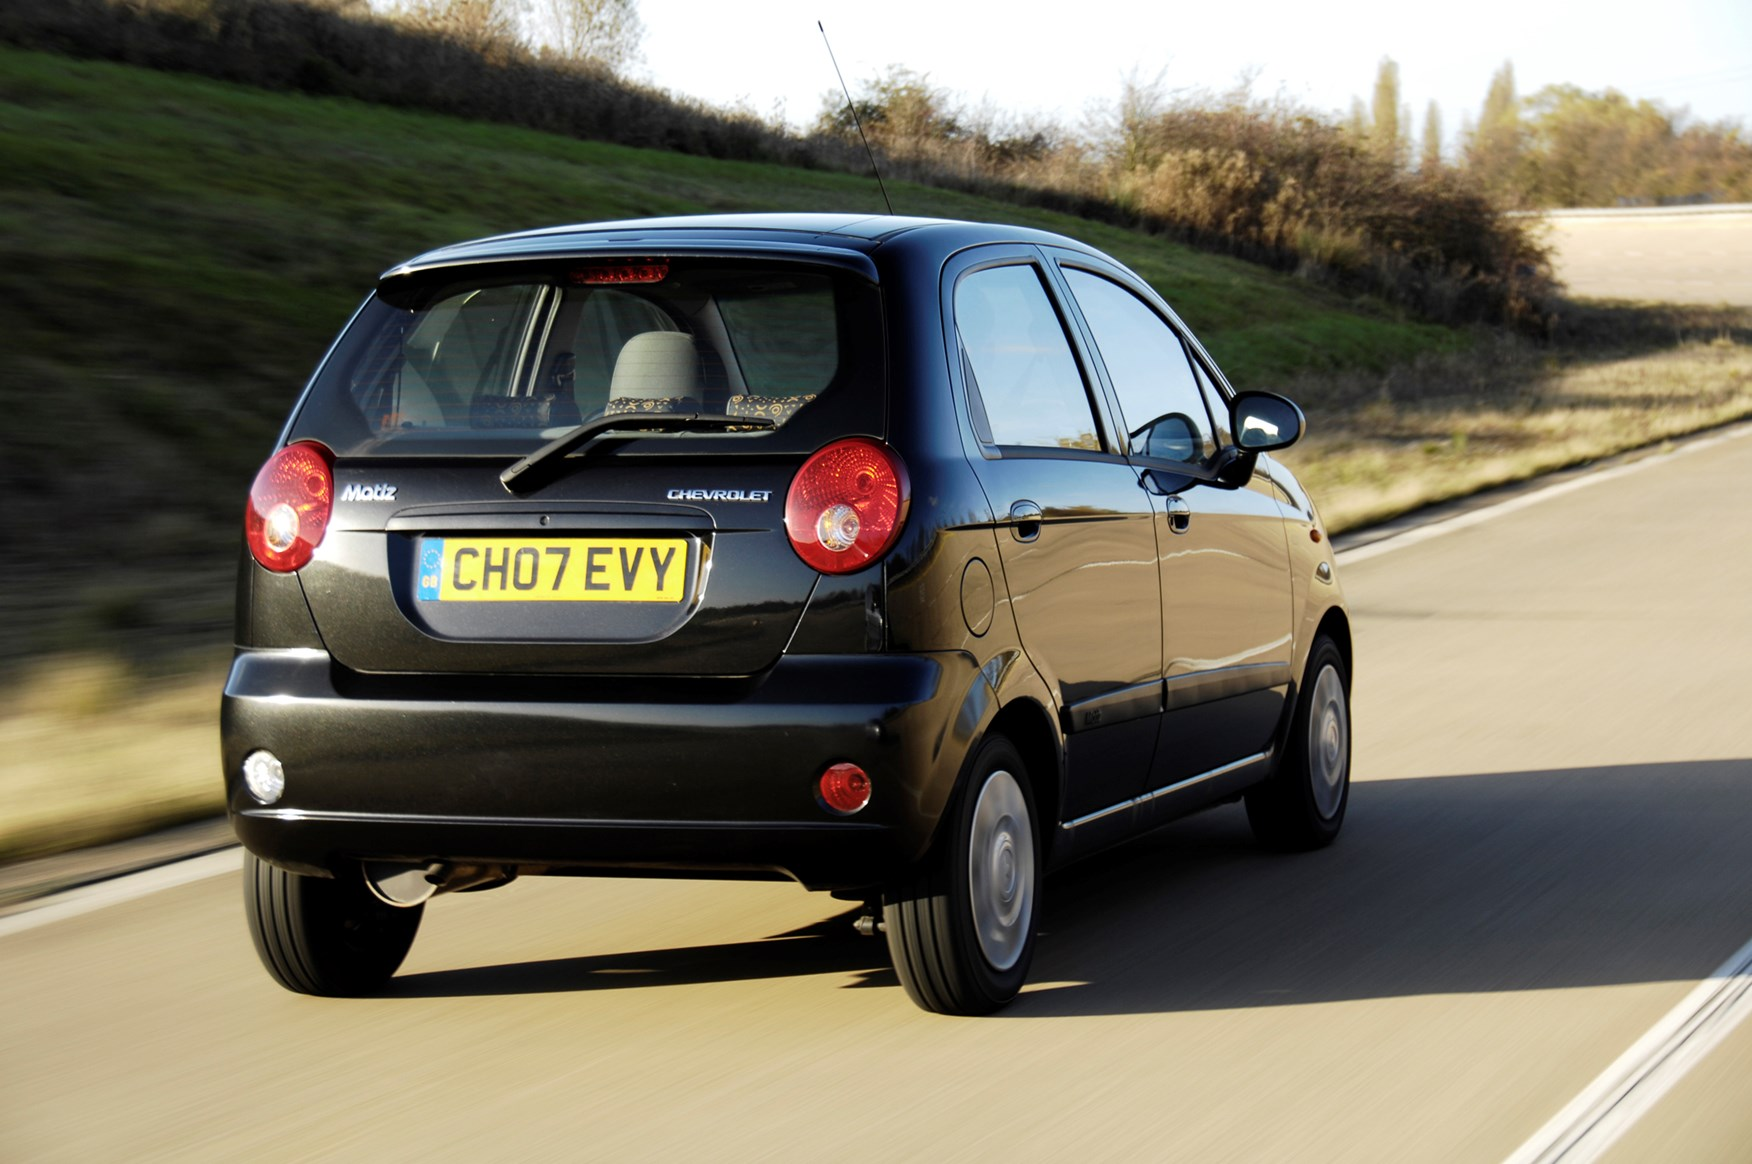 Used Chevrolet Matiz Hatchback (2005 - 2009) Interior | Parkers